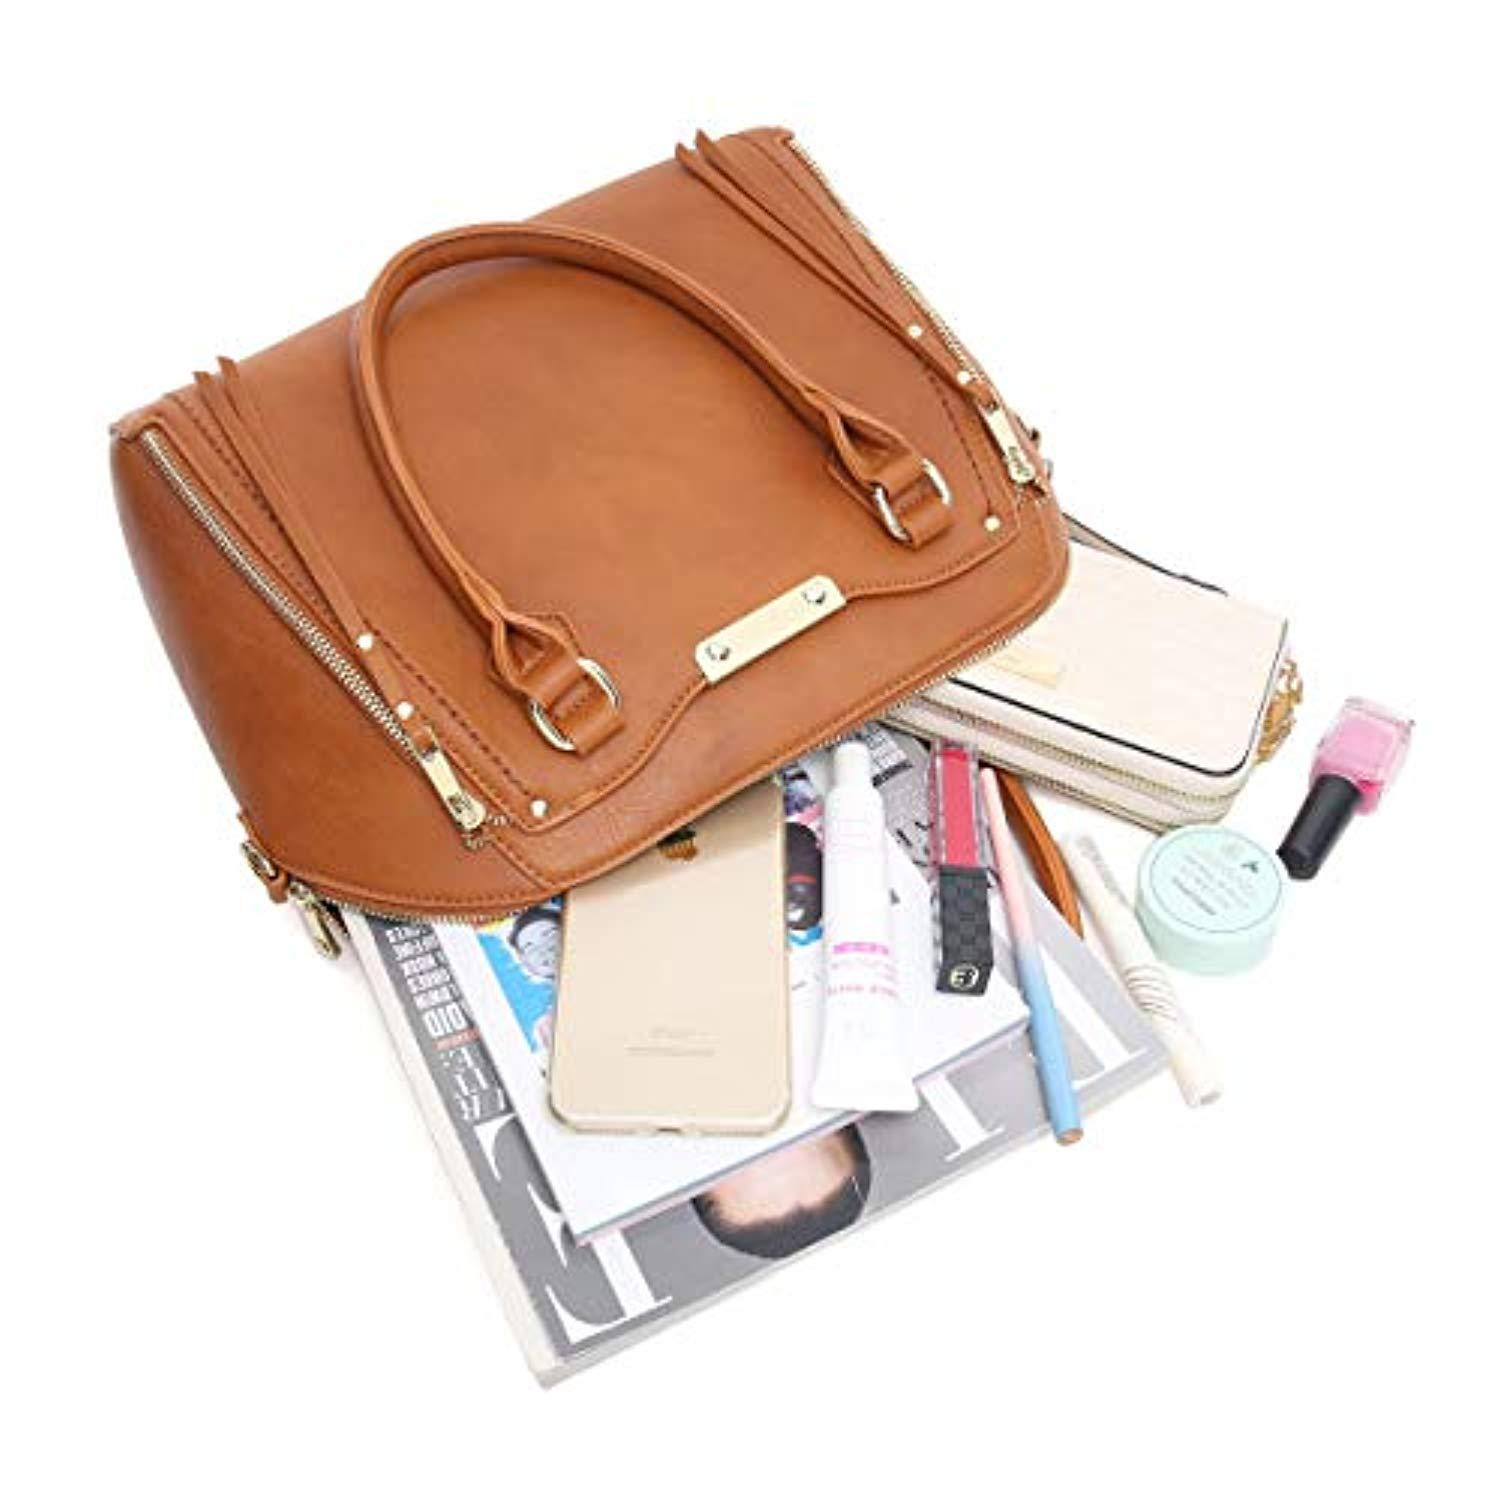 Handbags for Women